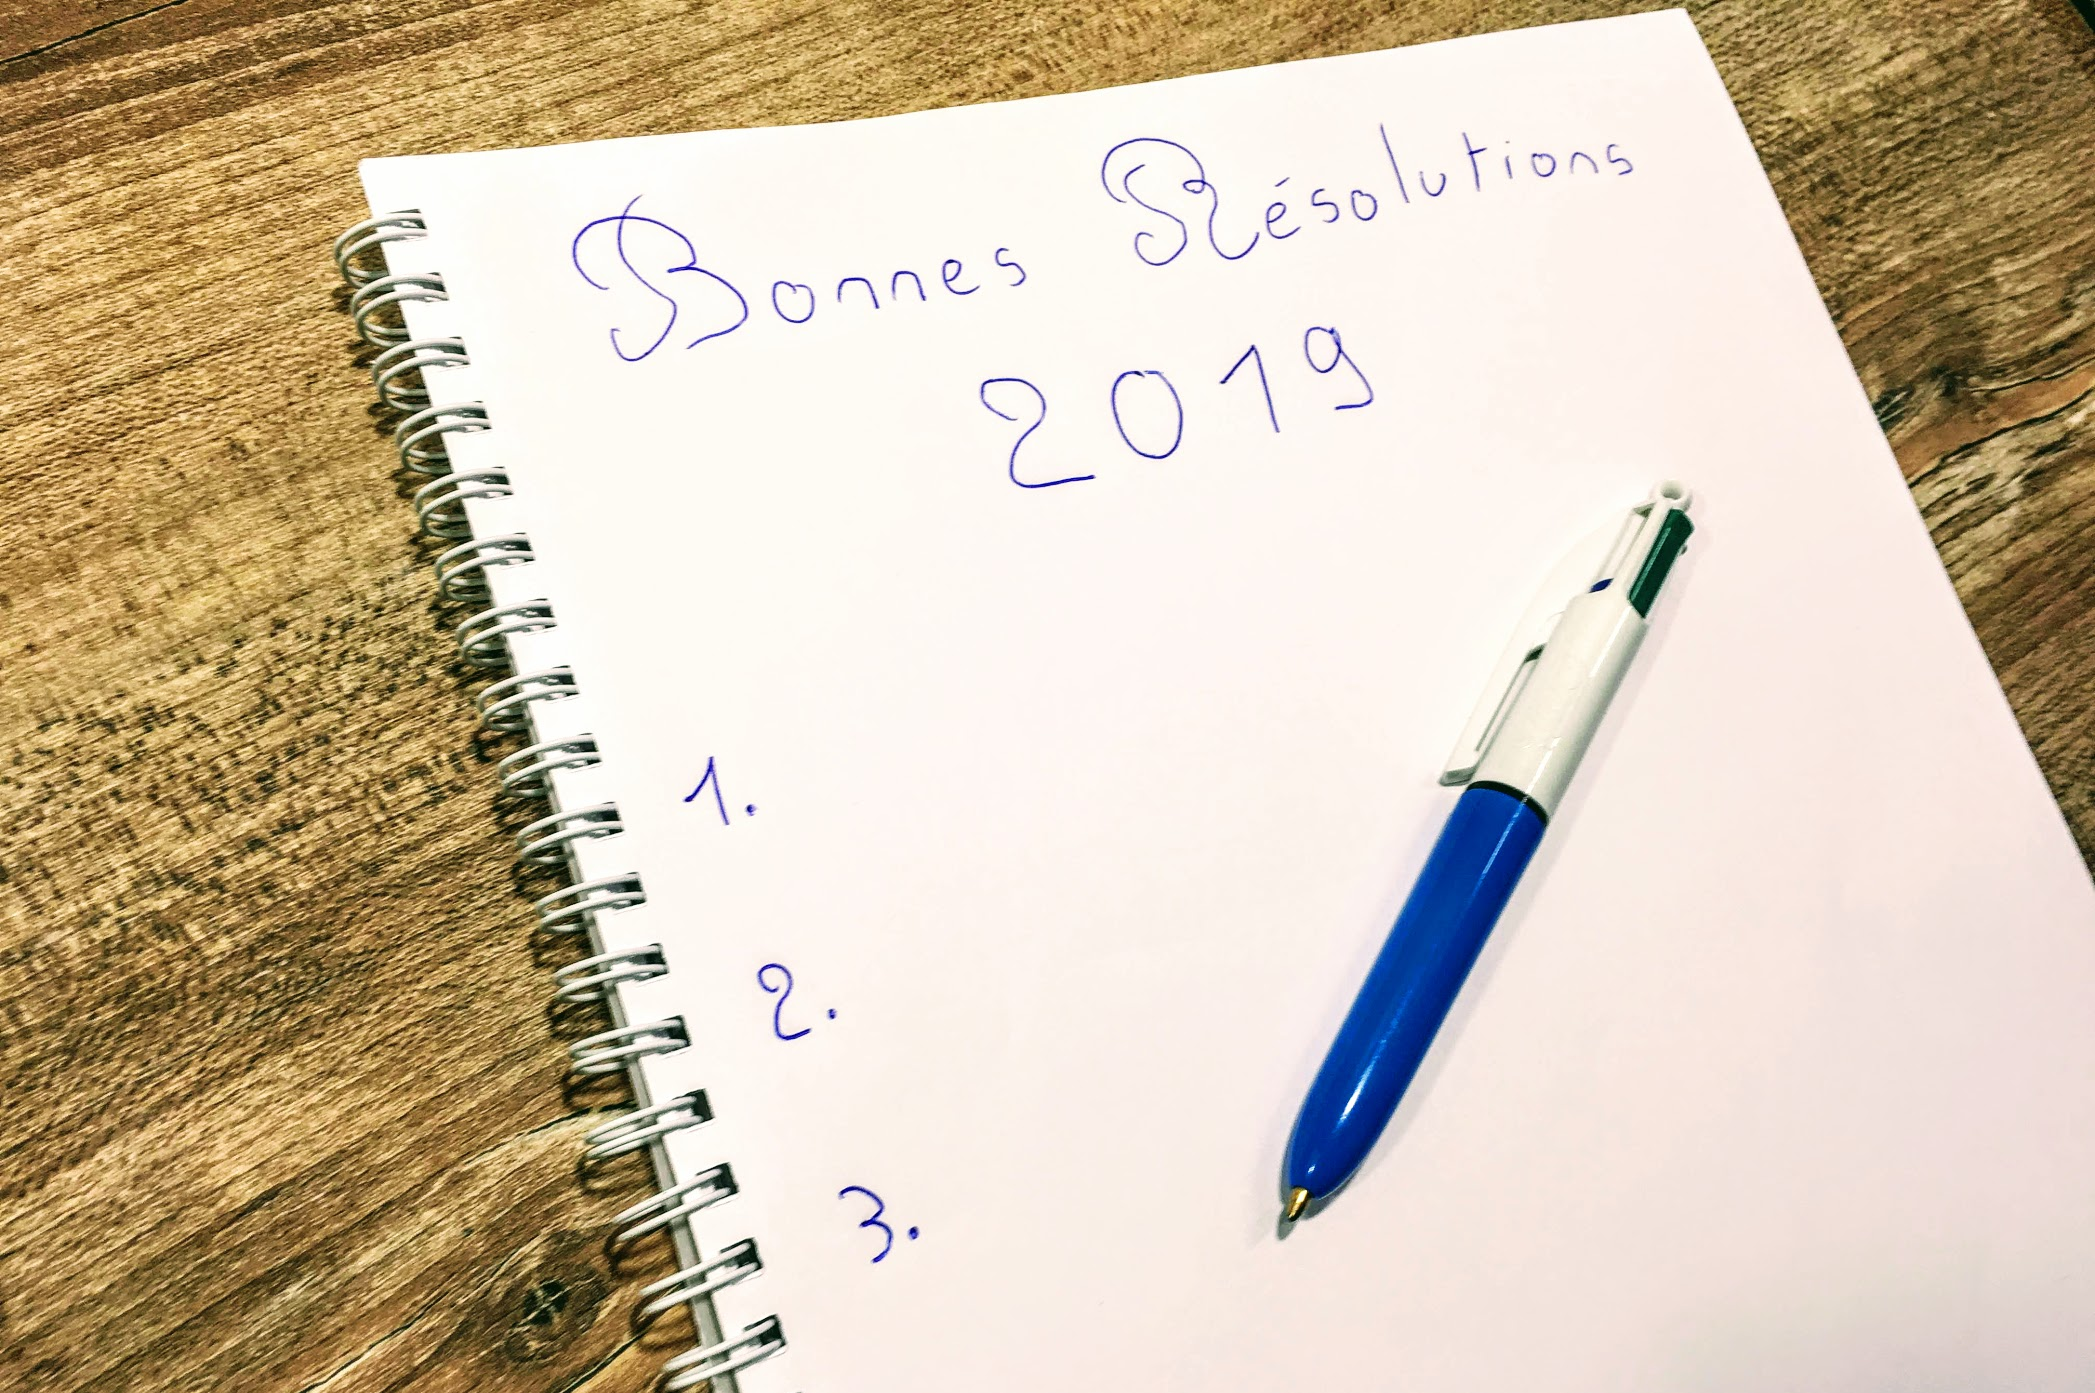 bonnes resolutions 2019